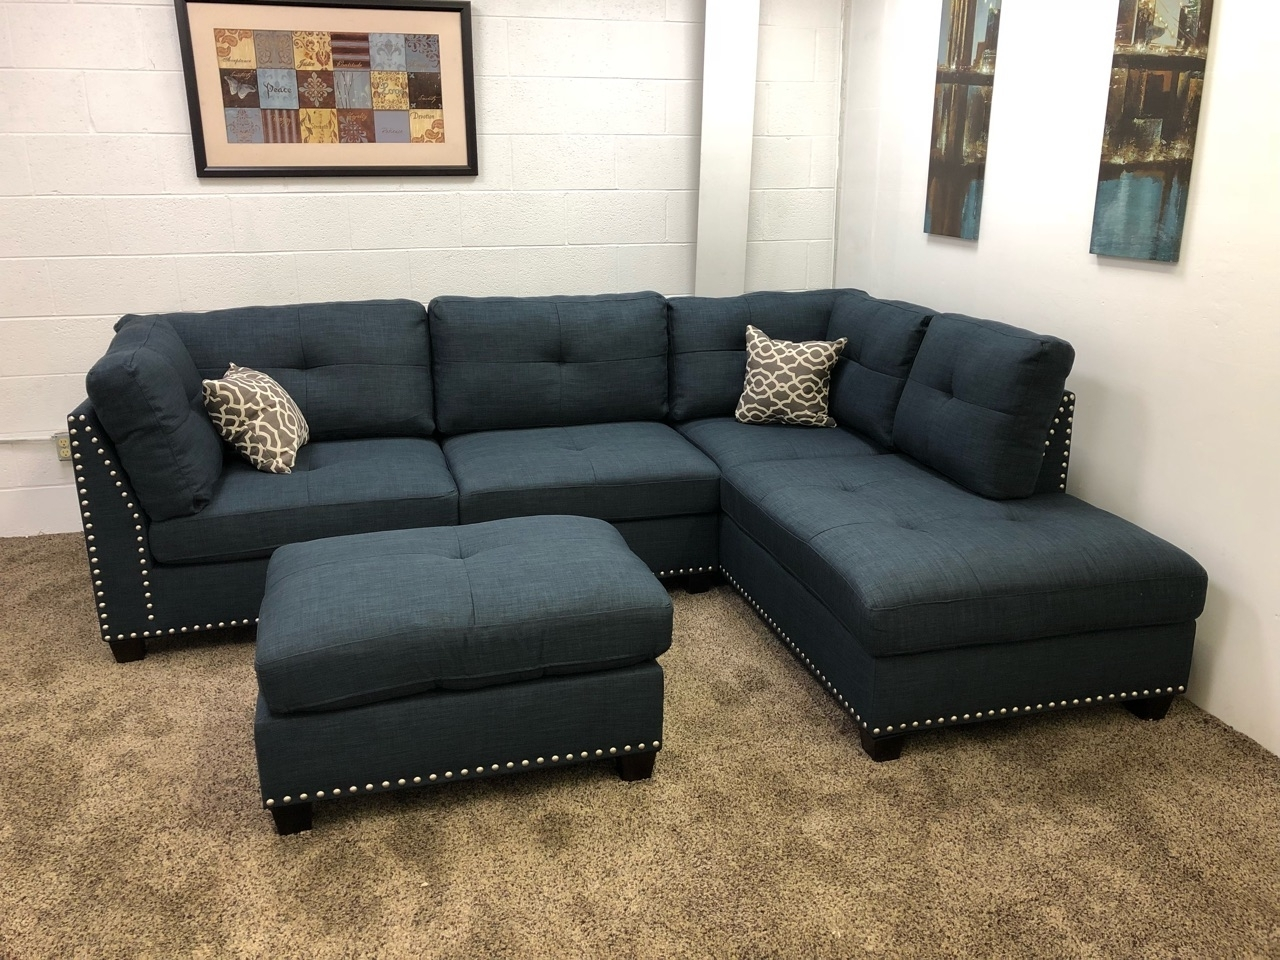 0 In Stock)#n754R- $250 Down- Blue Studded Linen Sectional Sofa W regarding Sectionals With Ottoman (Image 1 of 15)